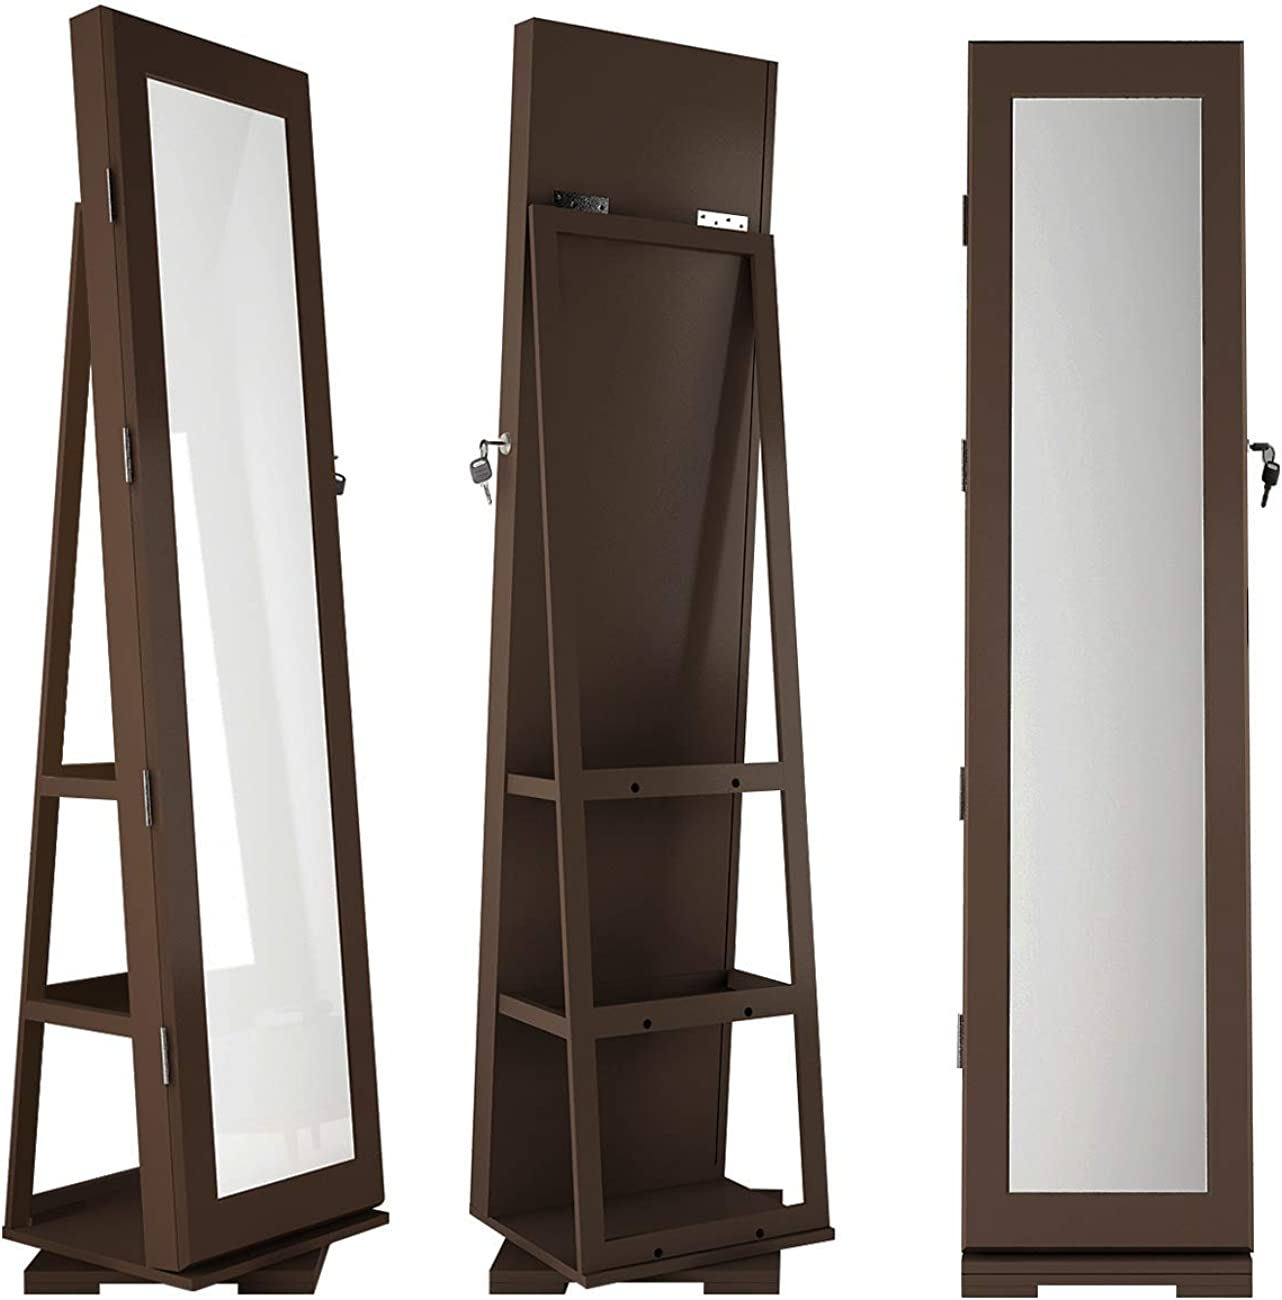 Lockable Standing Jewelry Armoire Organizer with Light/&Storage Shelf Back SDHYL 360/°Rotatable Full-Length Mirror with Jewelry Cabinet